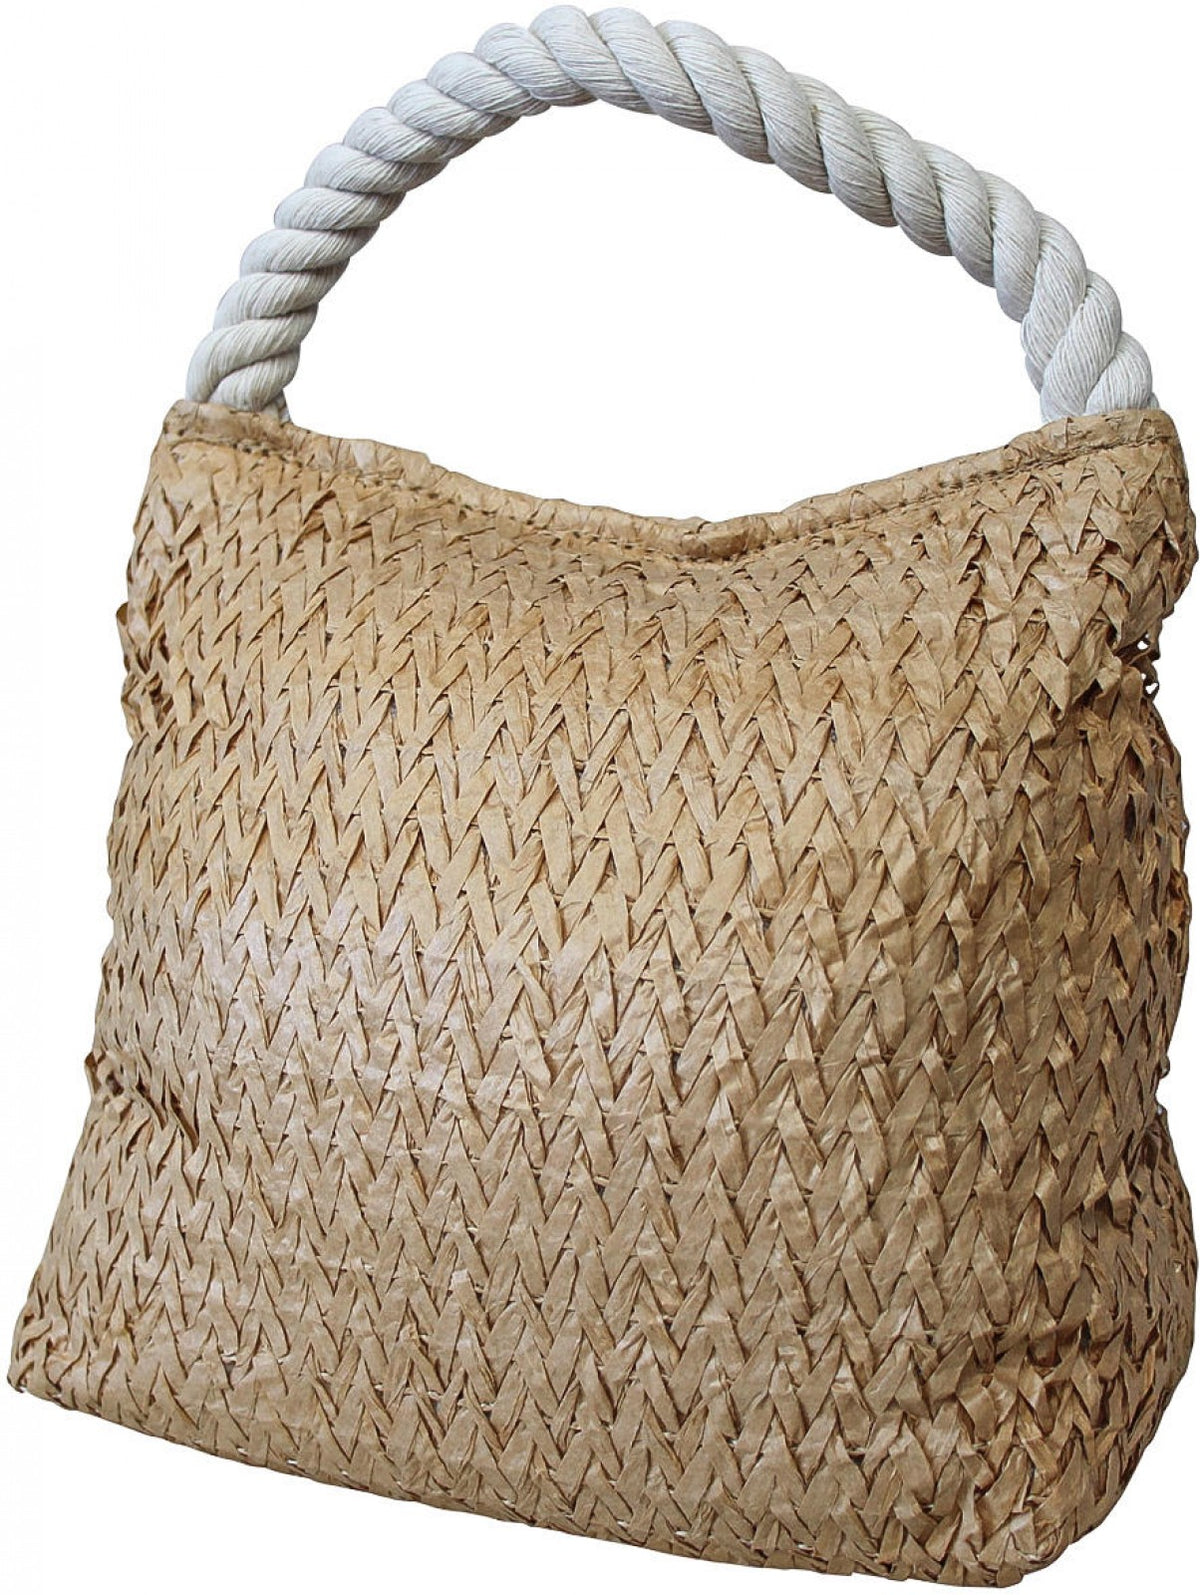 Doorstop Natural Rope